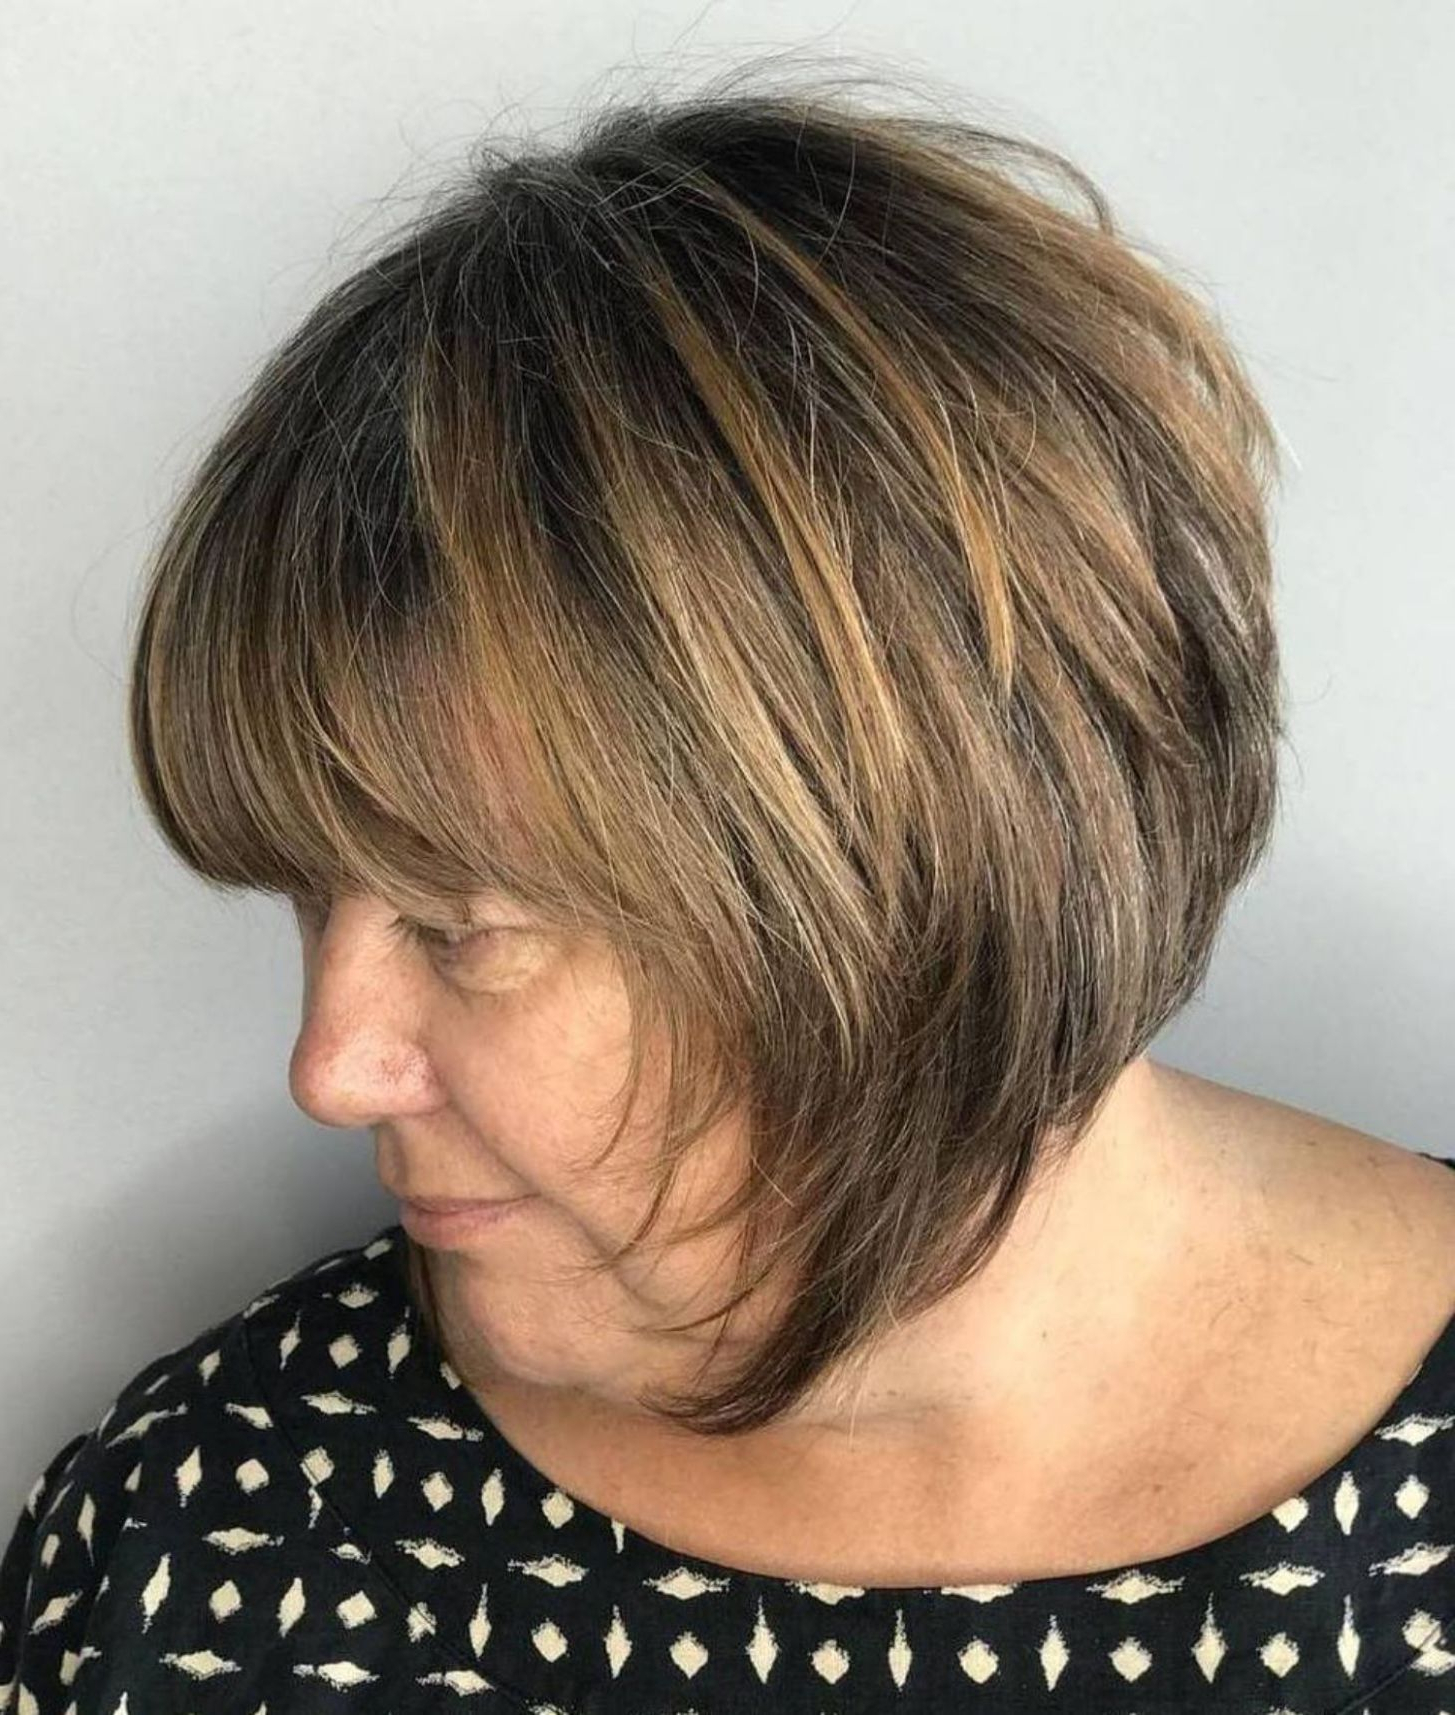 Pin On Haircuts Within Layered Haircuts With Delicate Feathers (View 9 of 20)